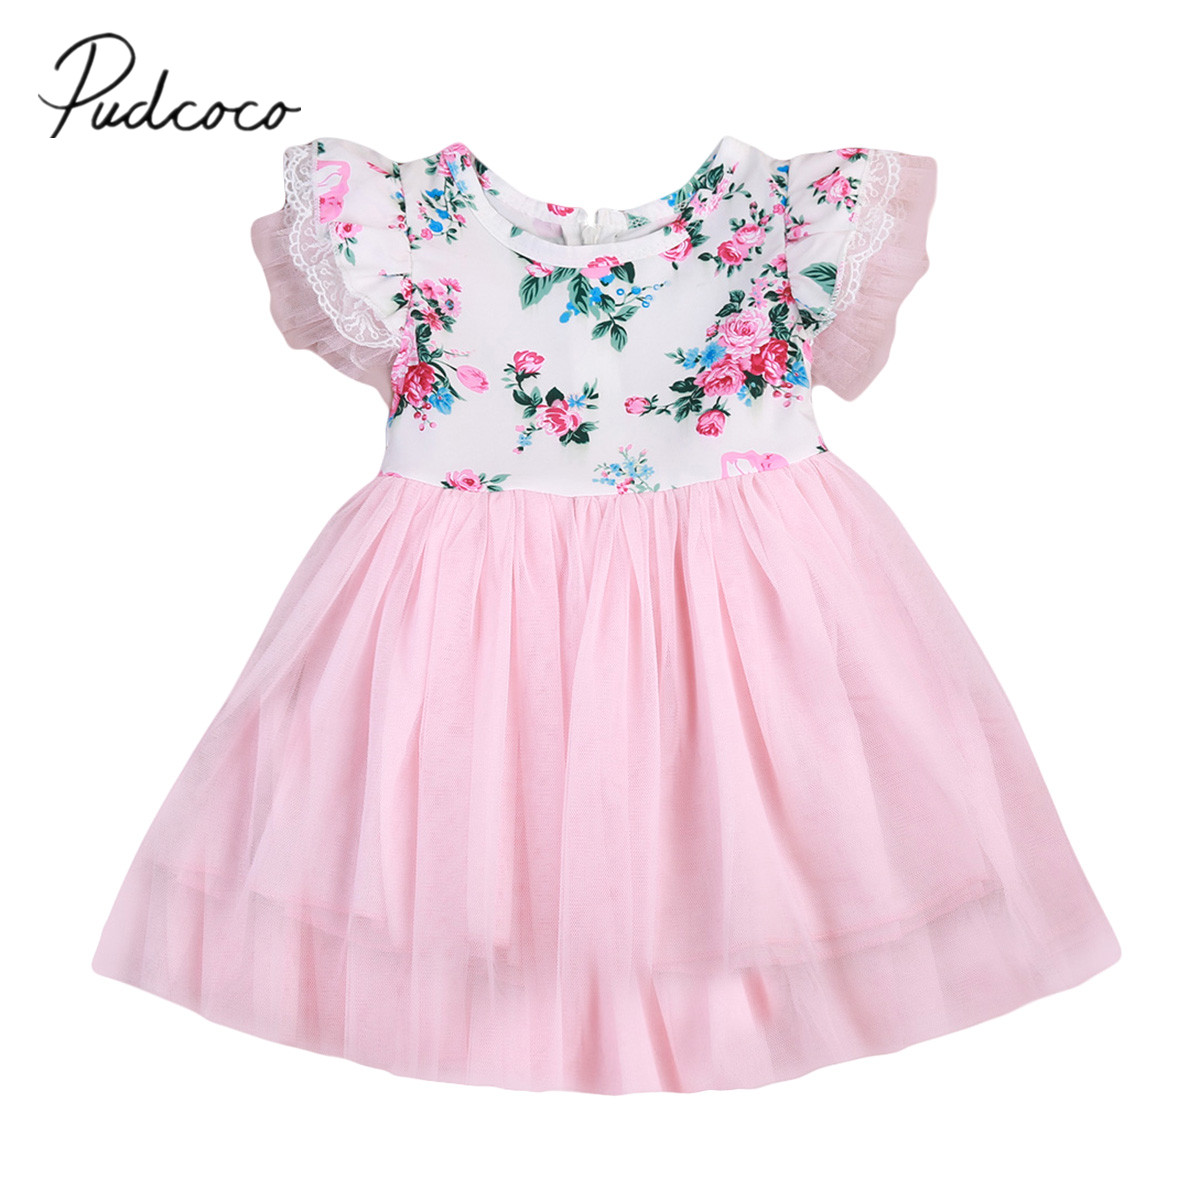 2017 Brand New Flower Girls Summer Princess Dress Kids Baby Party Wedding Pageant Tutu Ruffled Sleeveless Sundress 1-6T baby girls infant wedding party bowknot sleeveless ruffled vest dress sundress